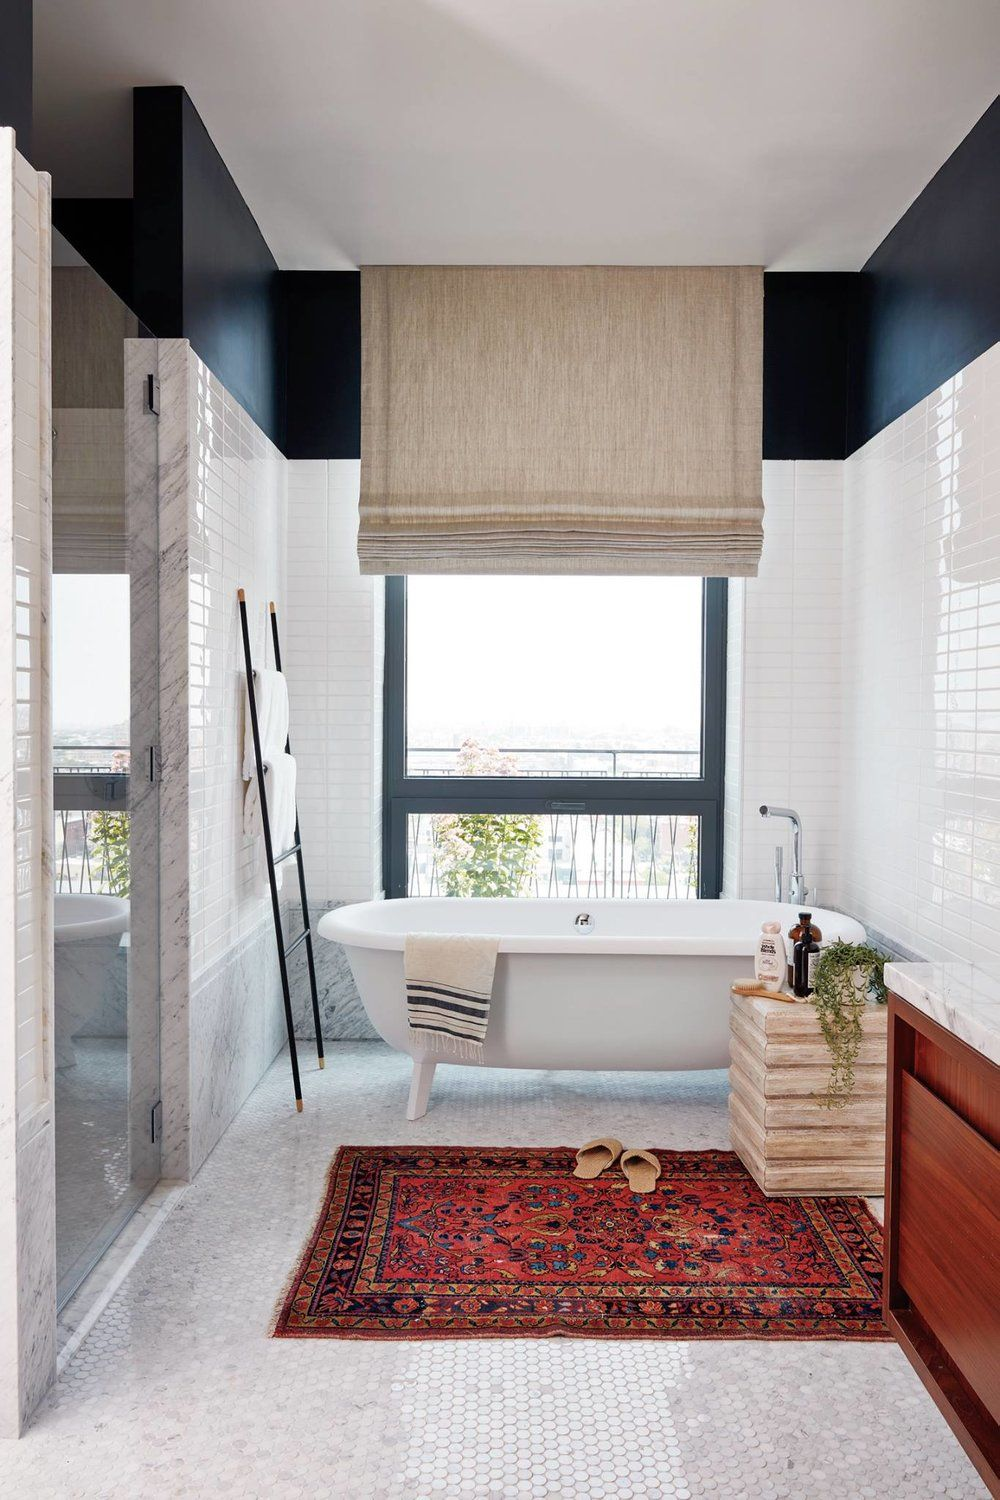 Real Simple Magazine Brooklyn Penthouse Reveal With Images